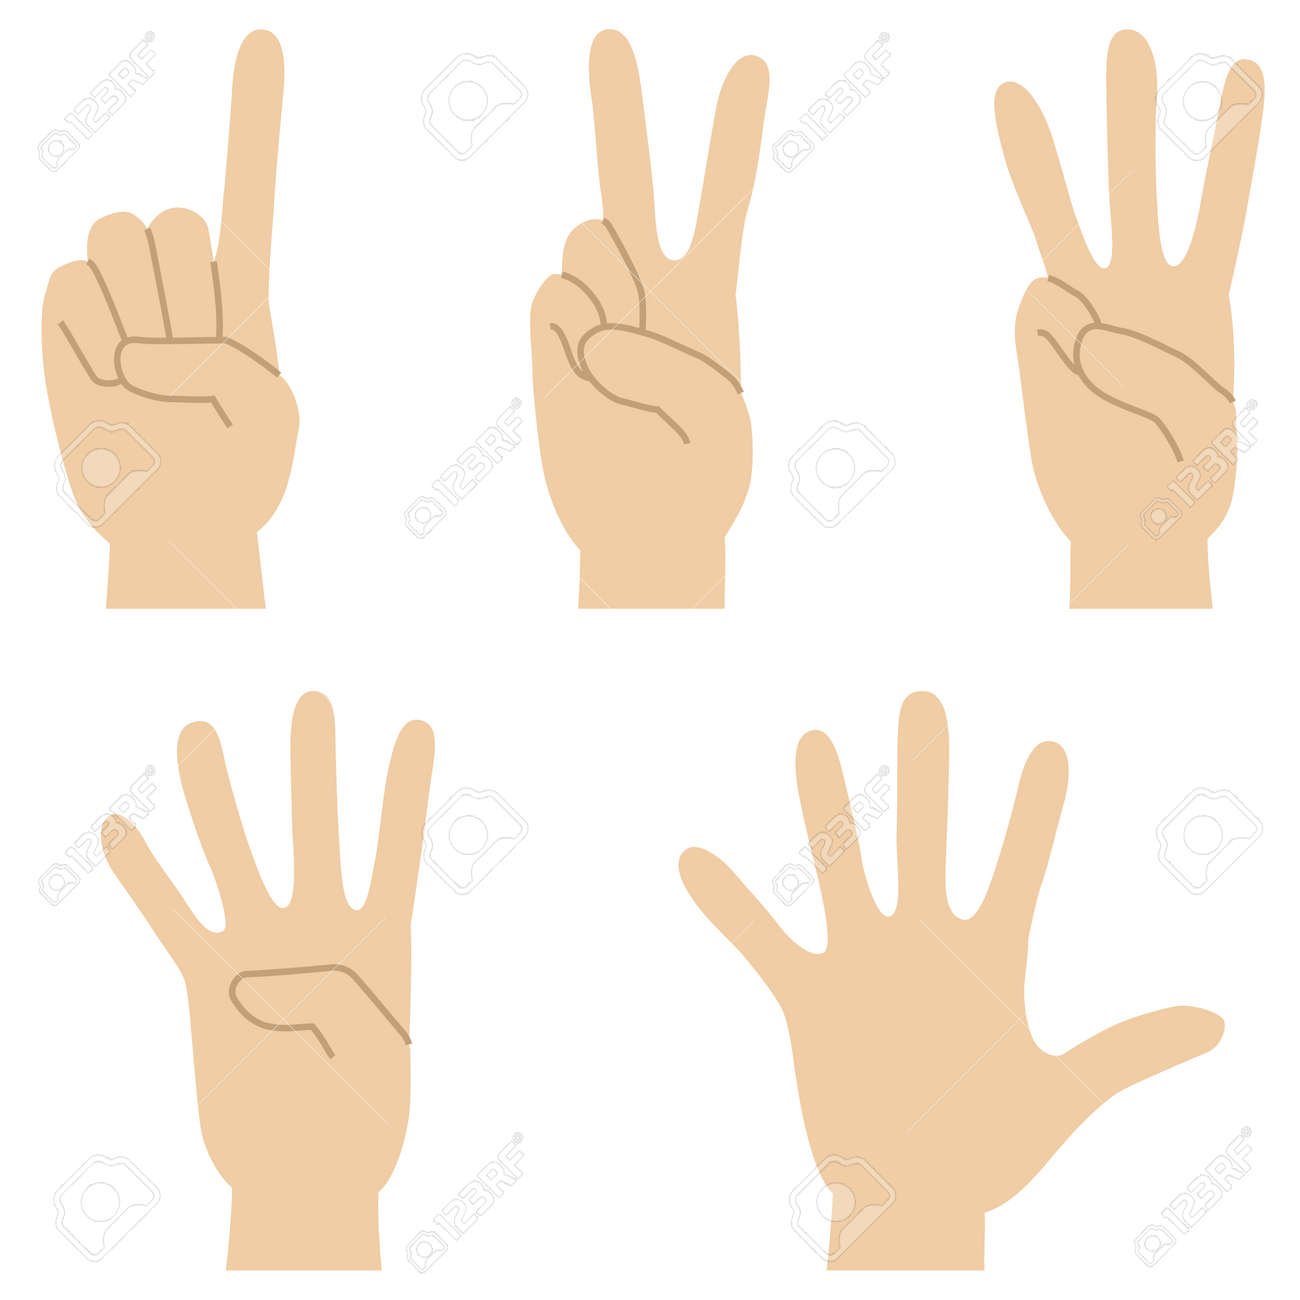 Set of illustrations of hand signs expressing the numbers 1 to 5 - 154457543